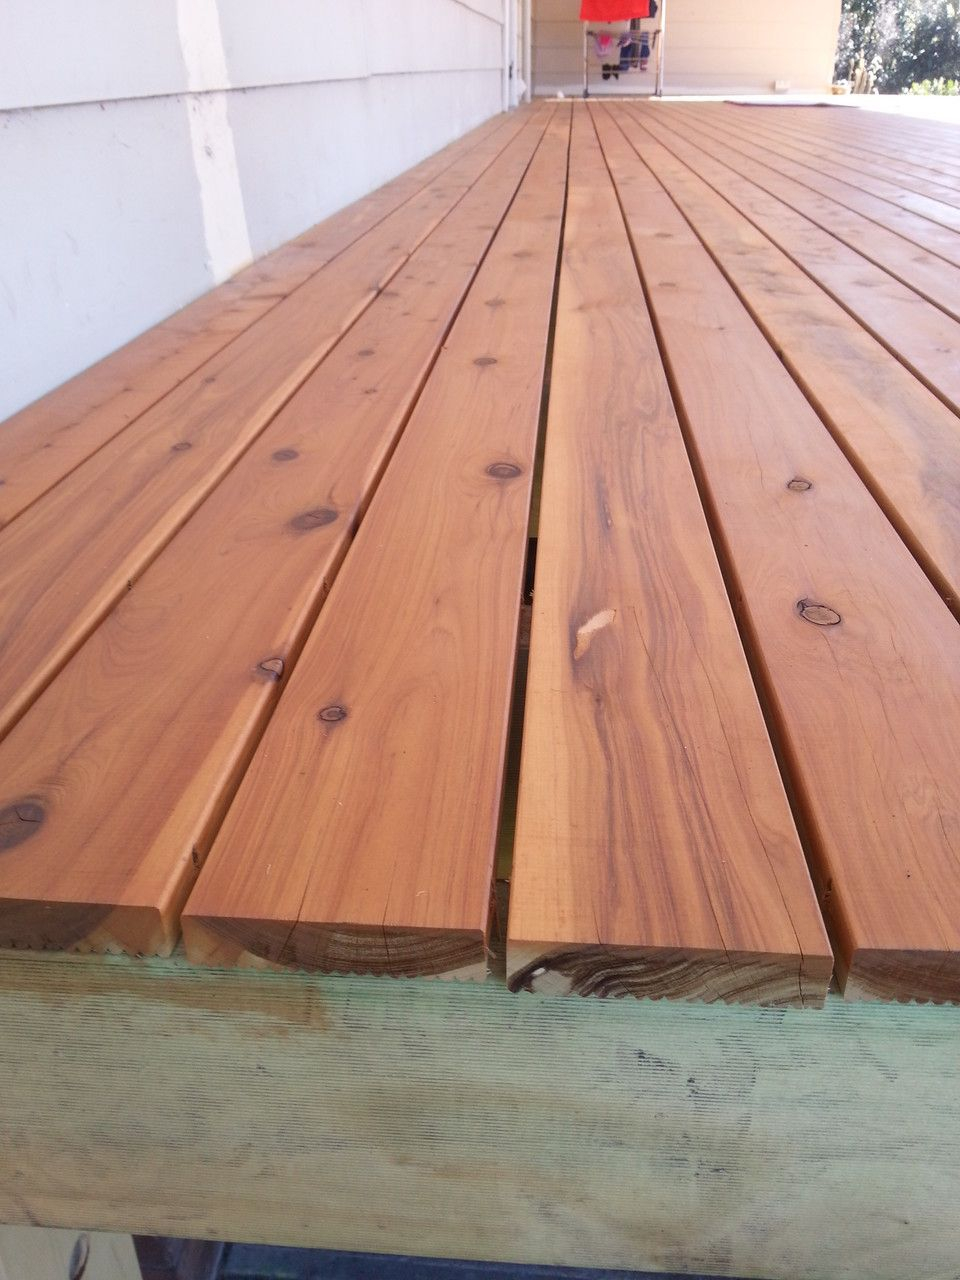 Cypress Pine Decking And Weatherboard A Natural Choice Timber At pertaining to dimensions 960 X 1280